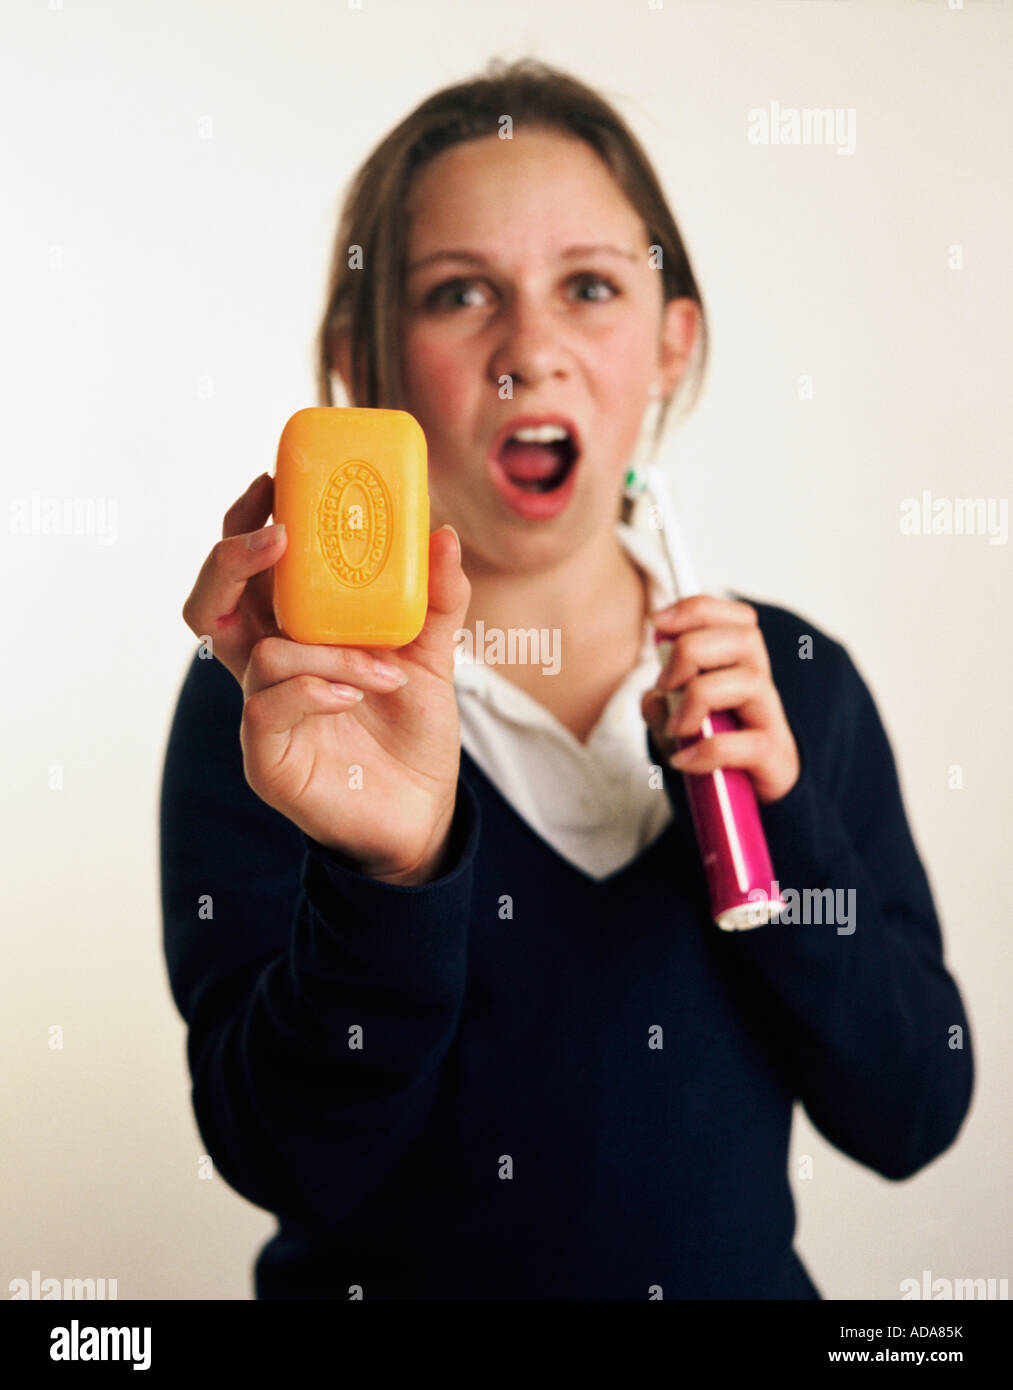 Portrait of girl holding soap and toothbrush - Stock Image